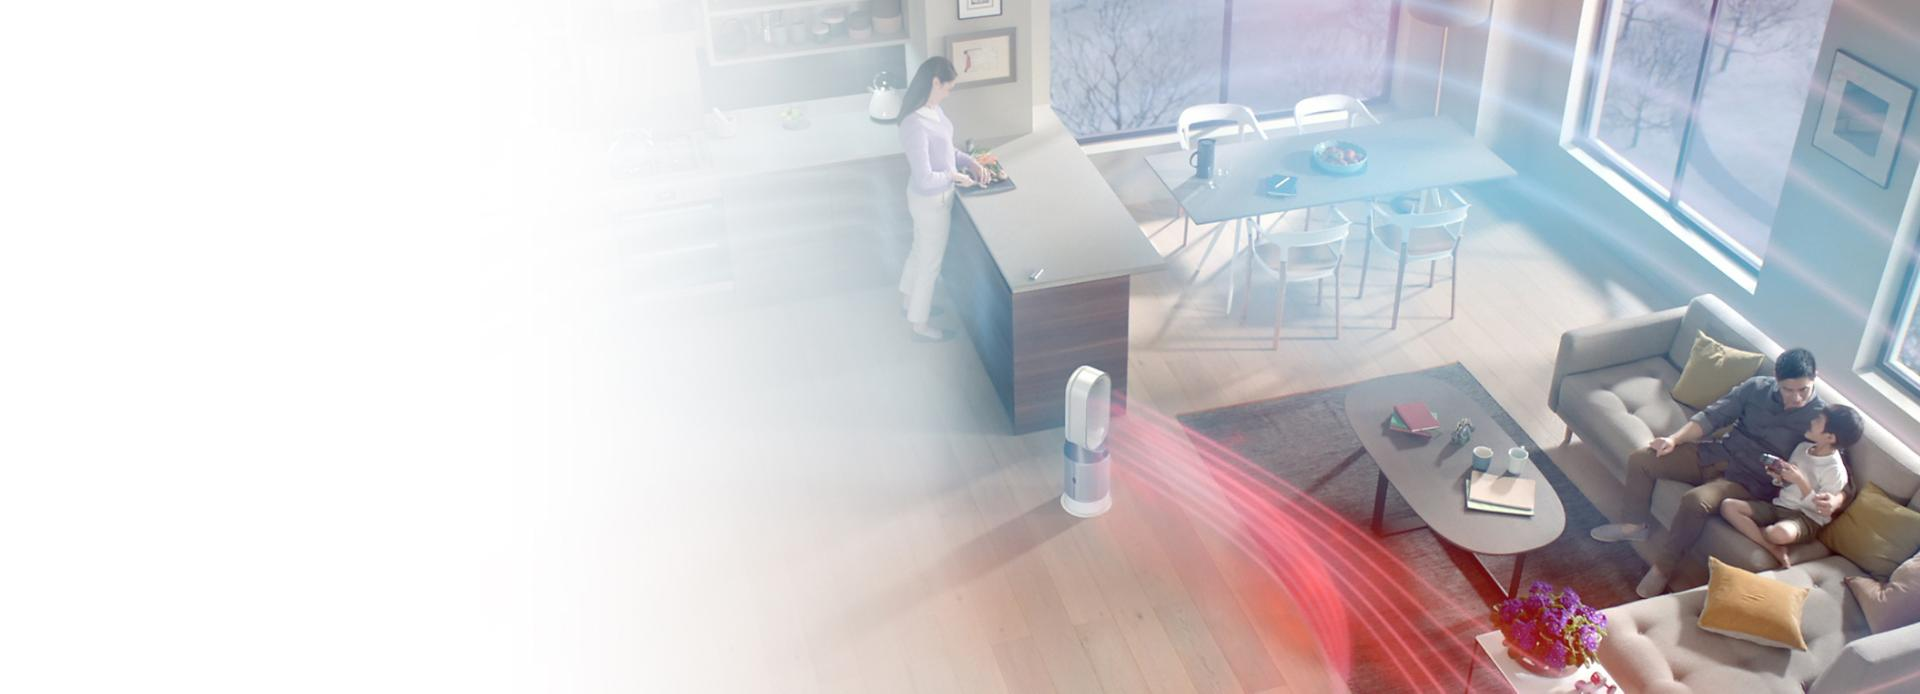 Dyson purifier fan heater in living room